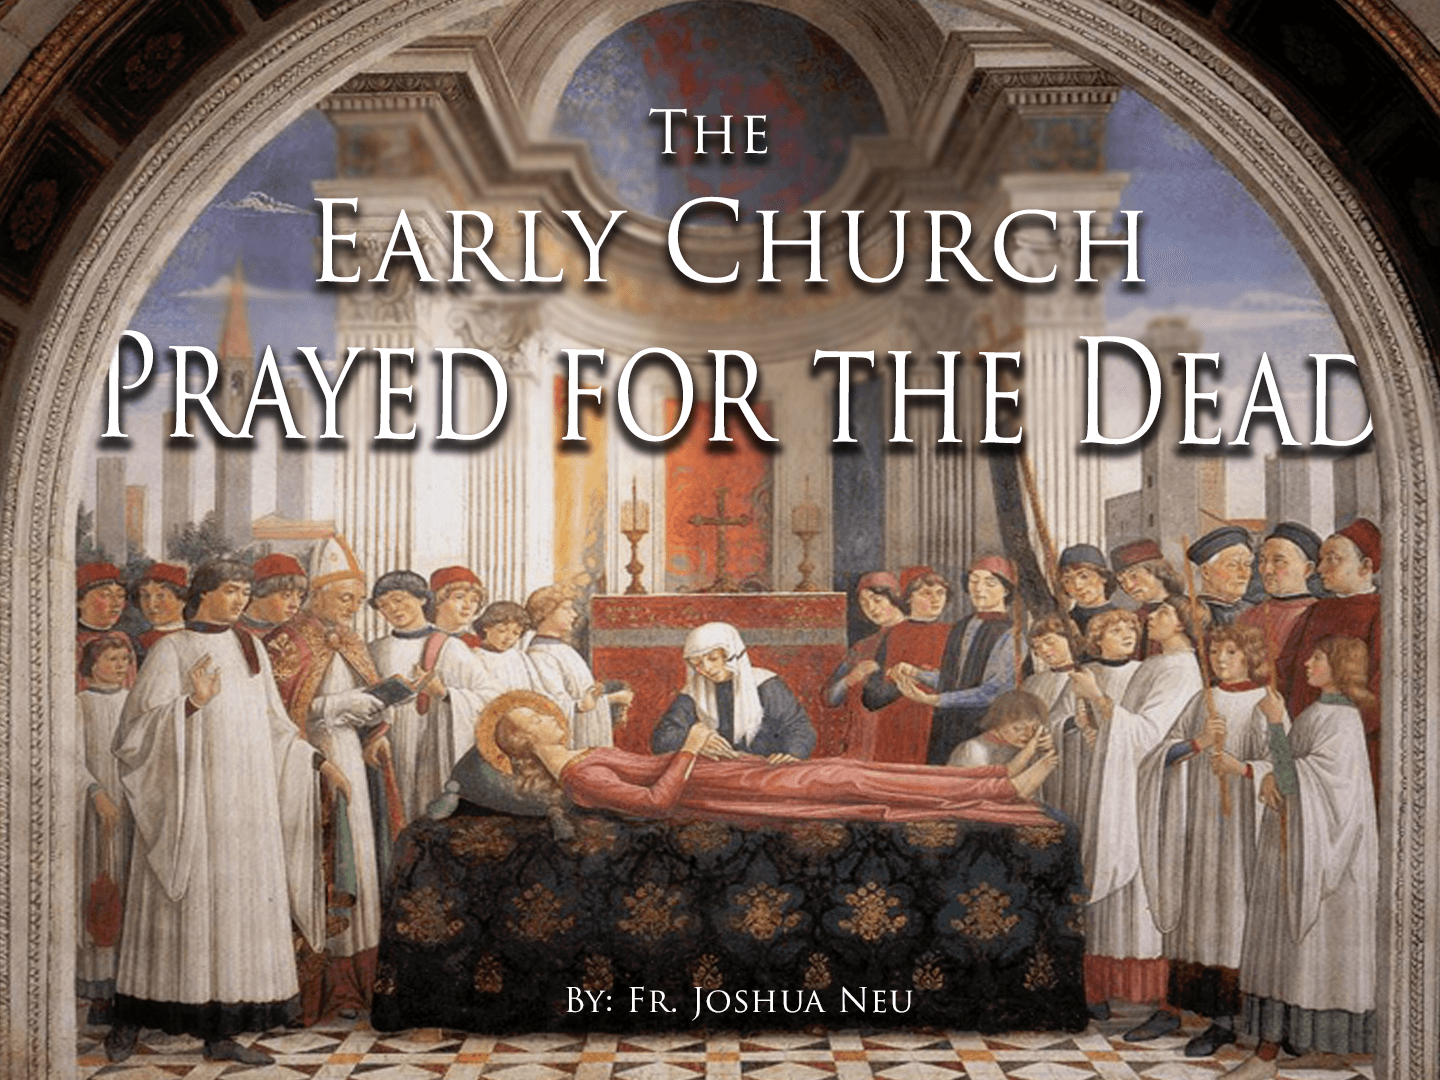 The Early Church Prayed for the Dead